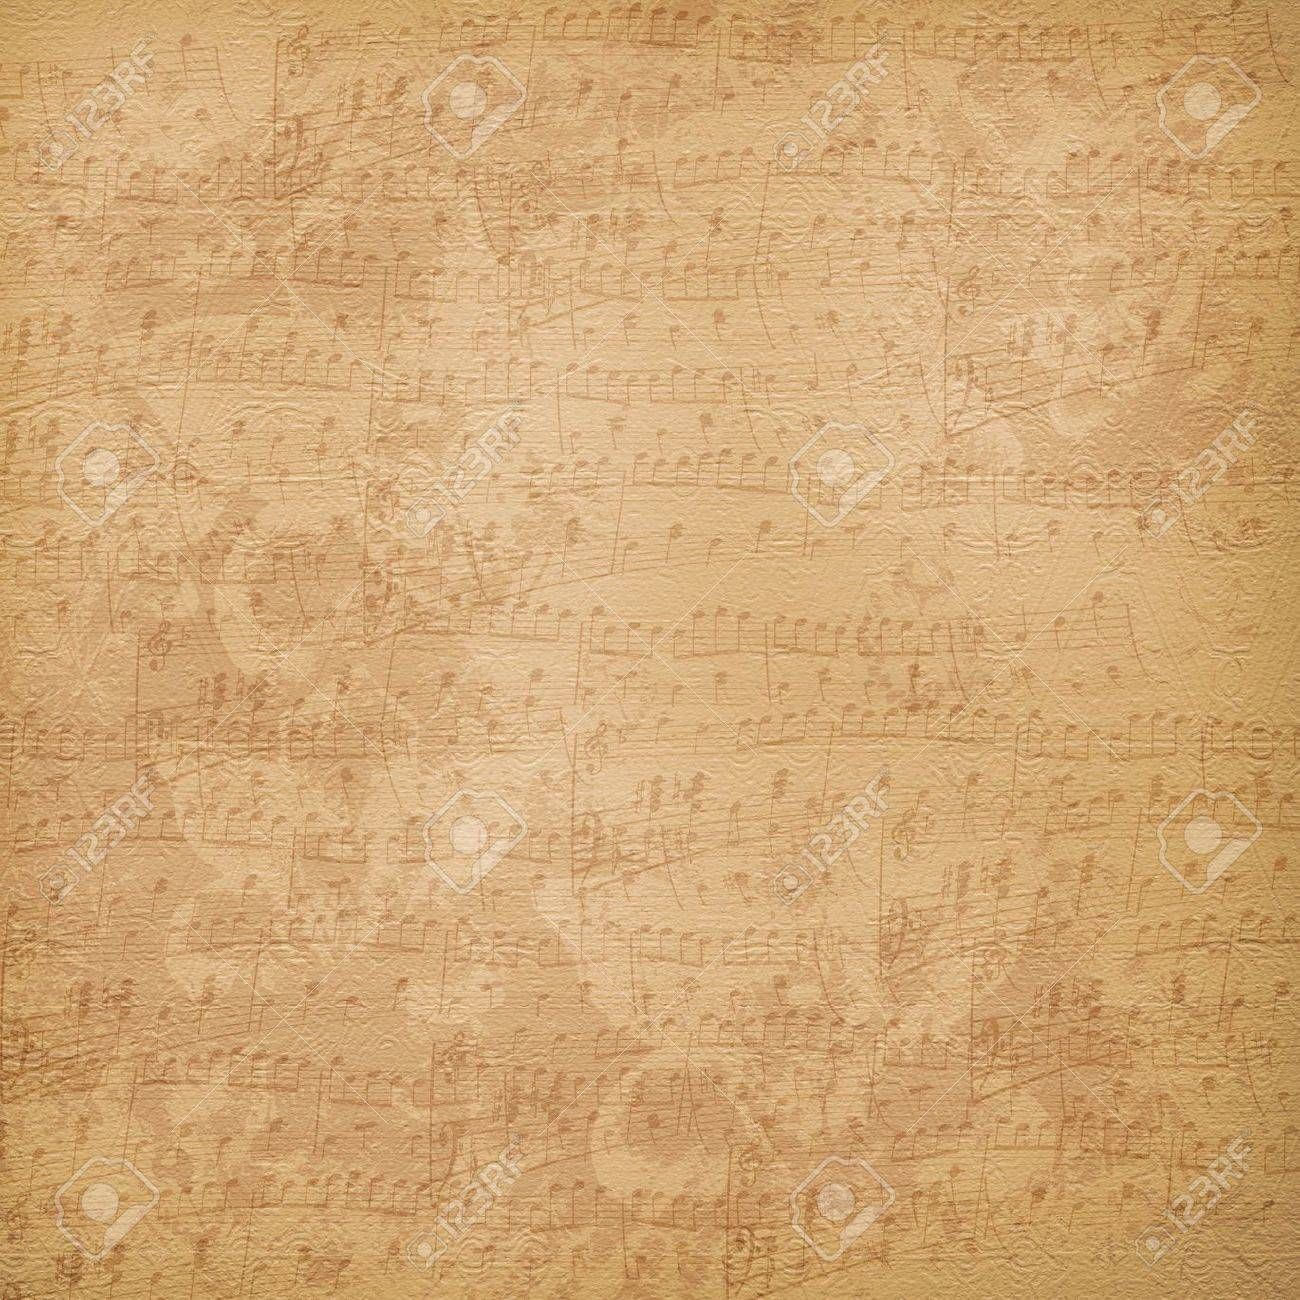 Old alienated musical paper in scrapbooking style for design Stock Photo - 6775694